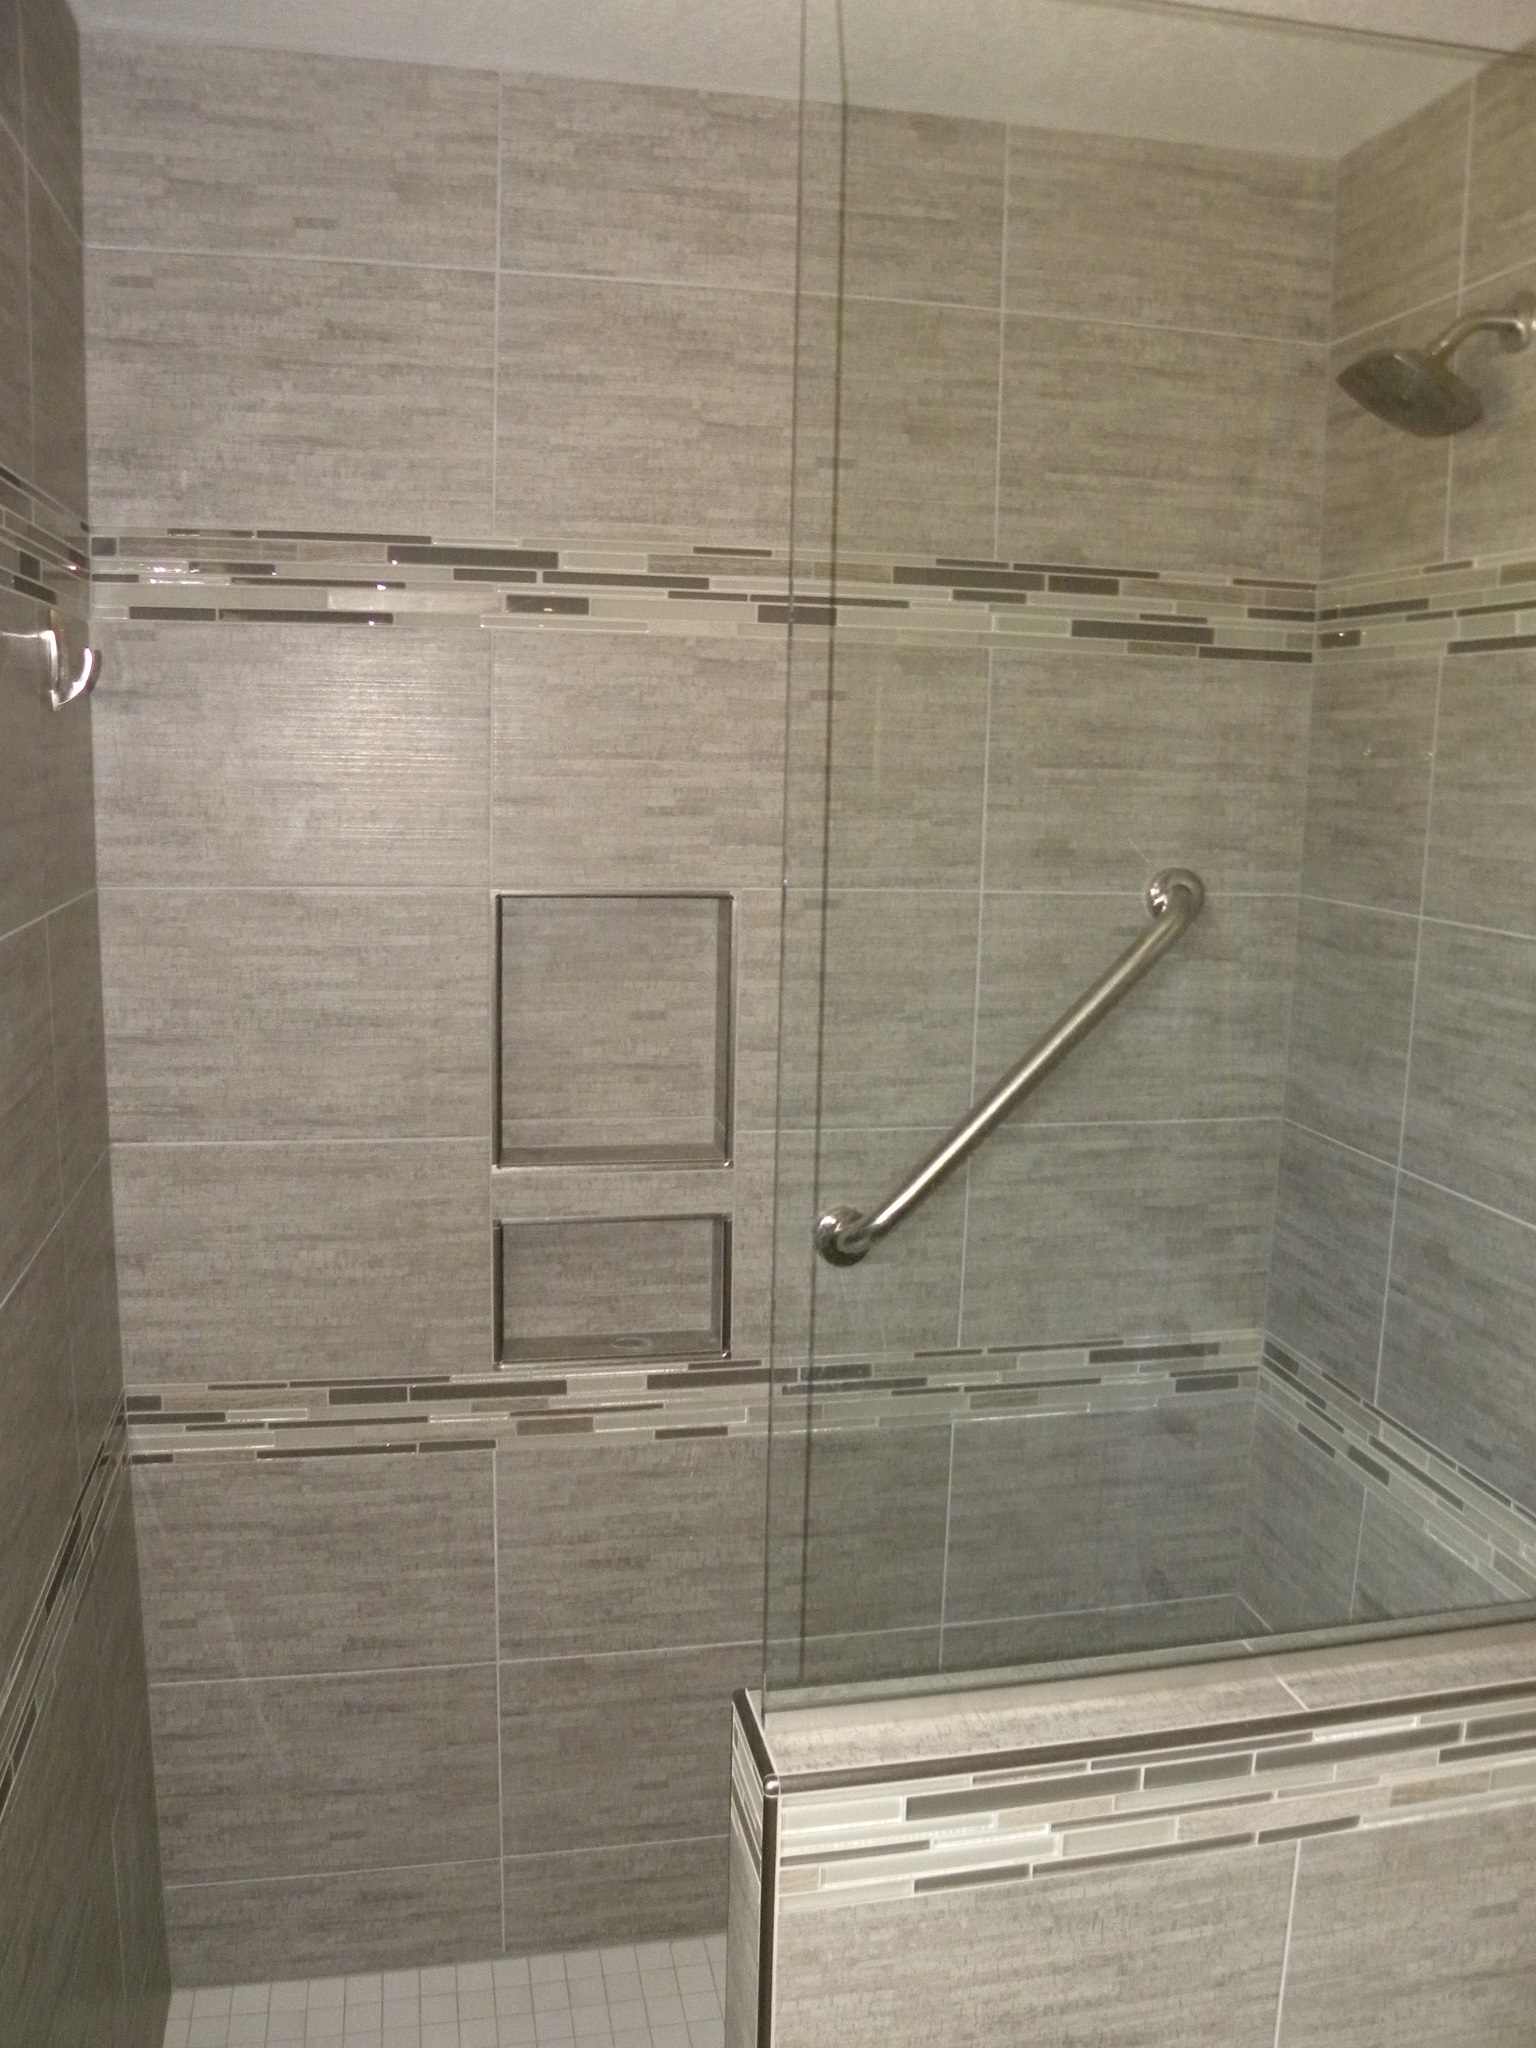 A custom built shower with a glass door and gray tile